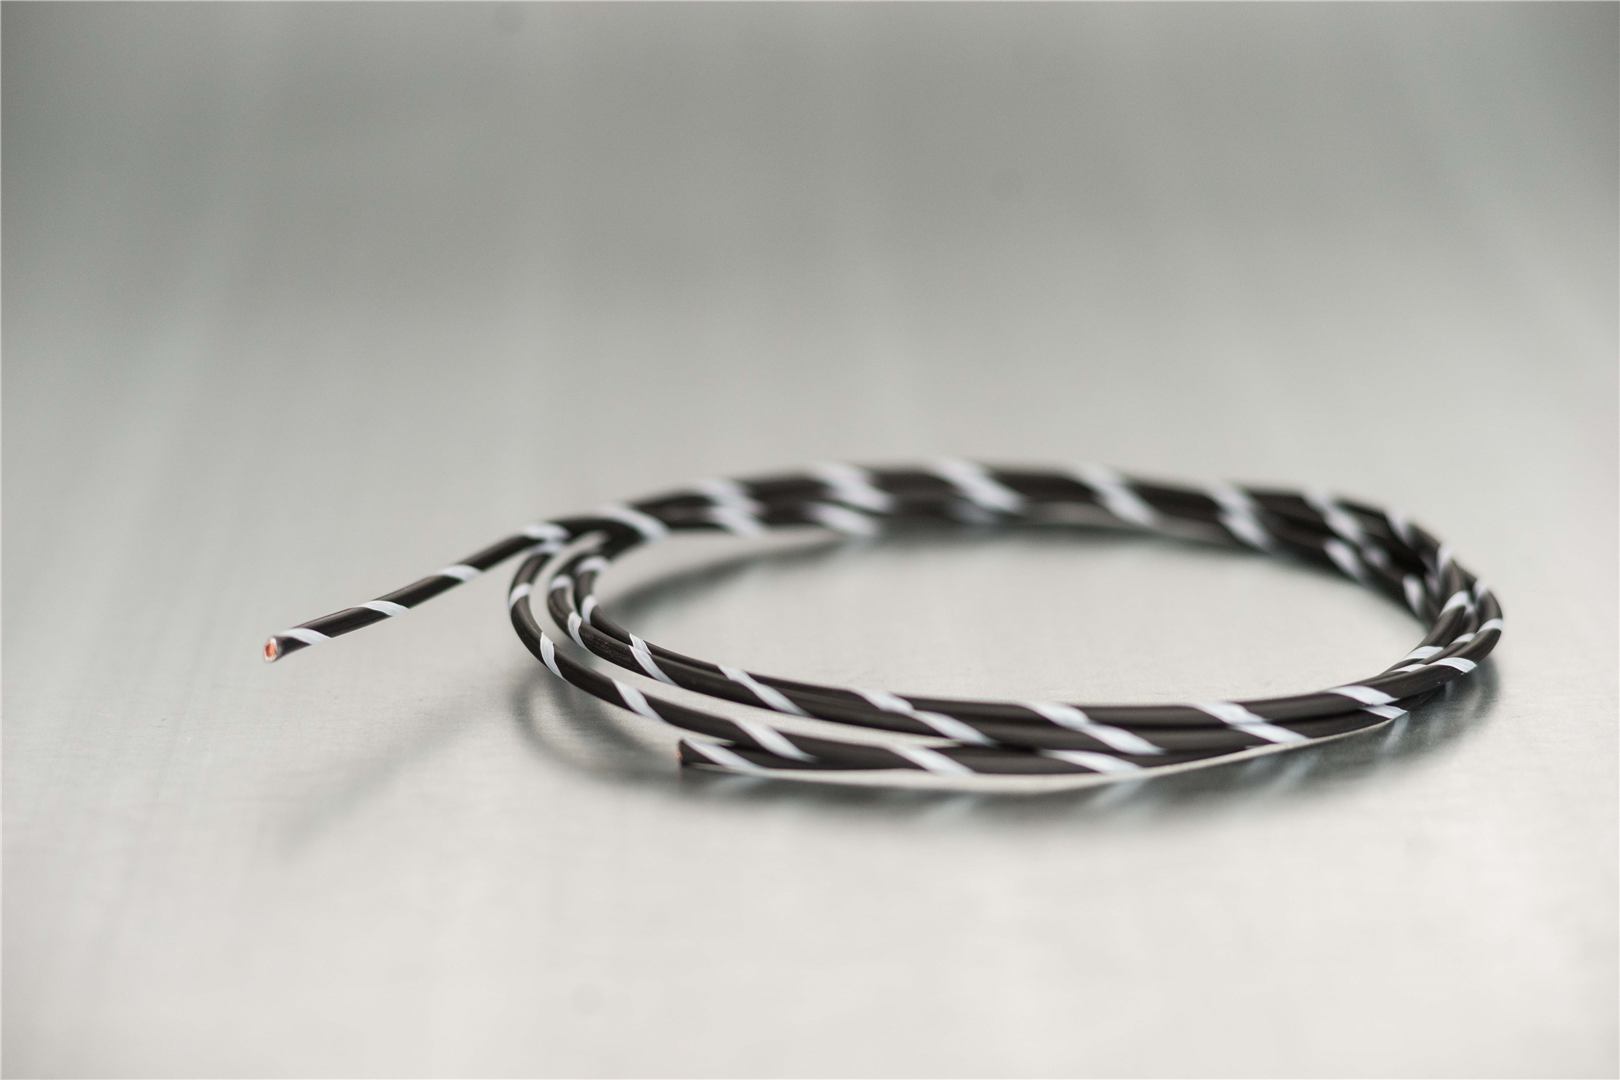 14 Black/White Primary Wire